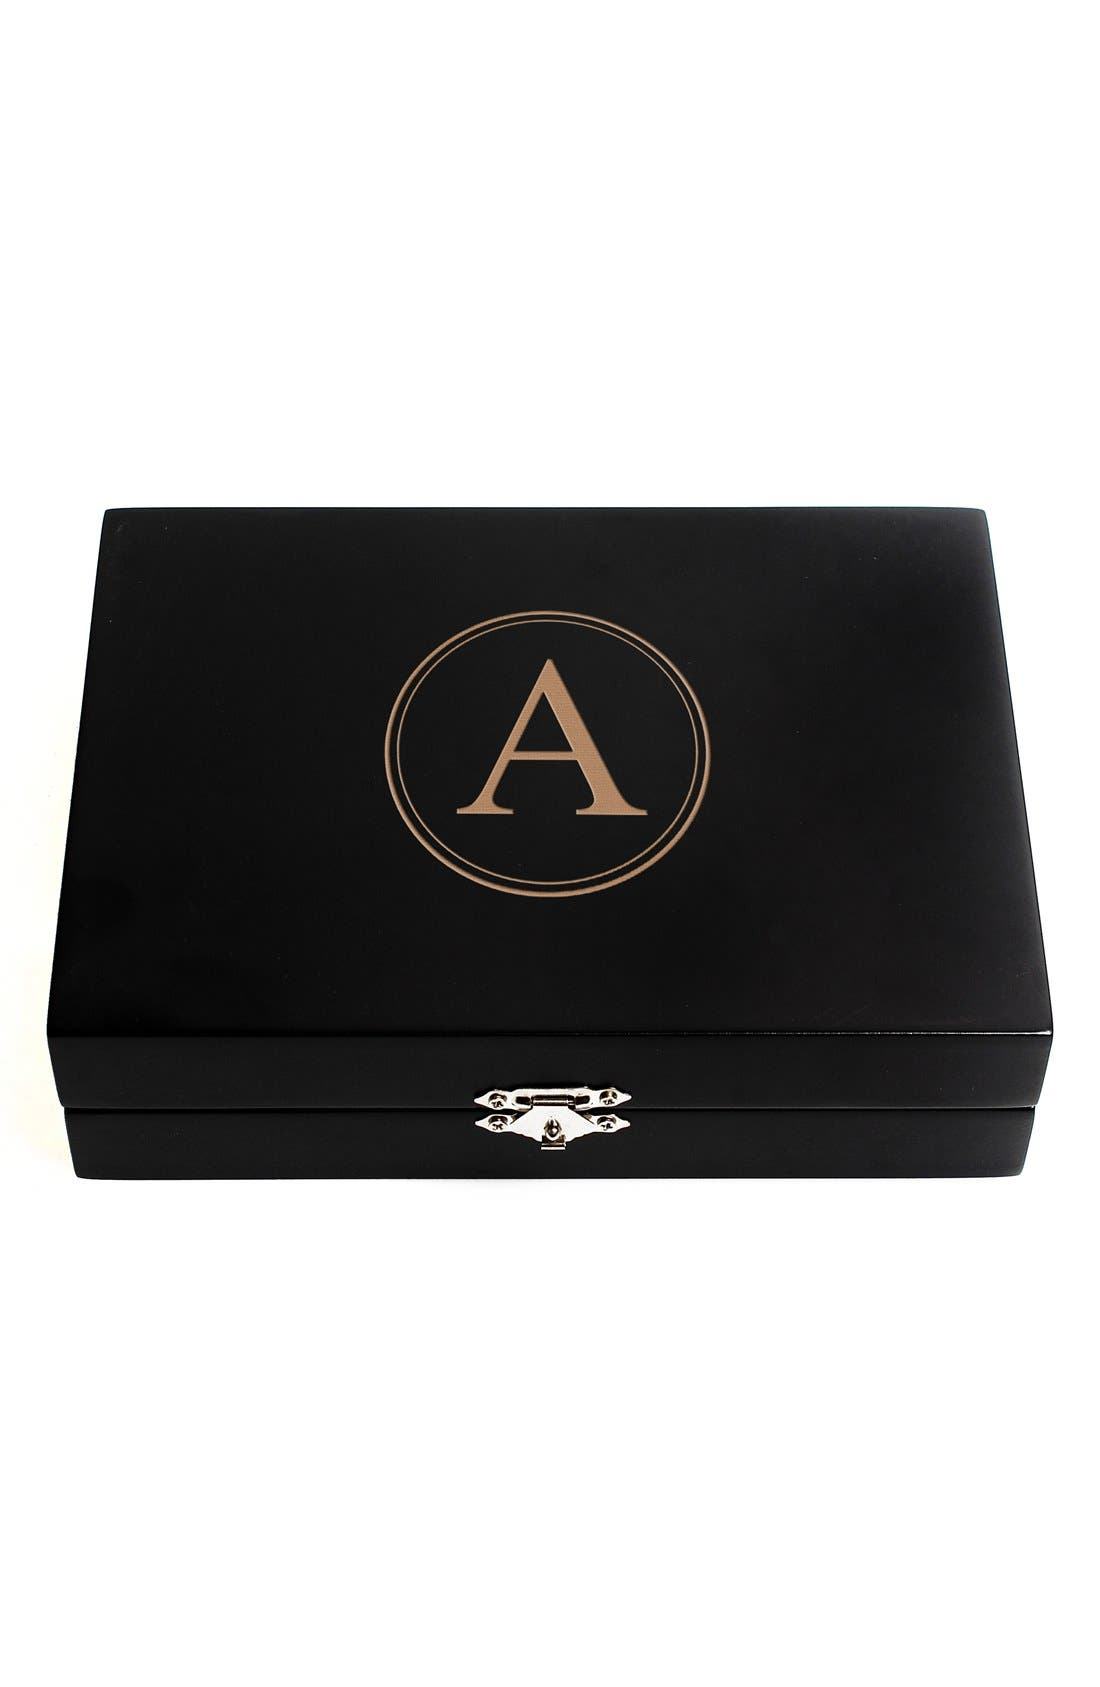 Monogram Wooden Jewelry Box,                             Main thumbnail 3, color,